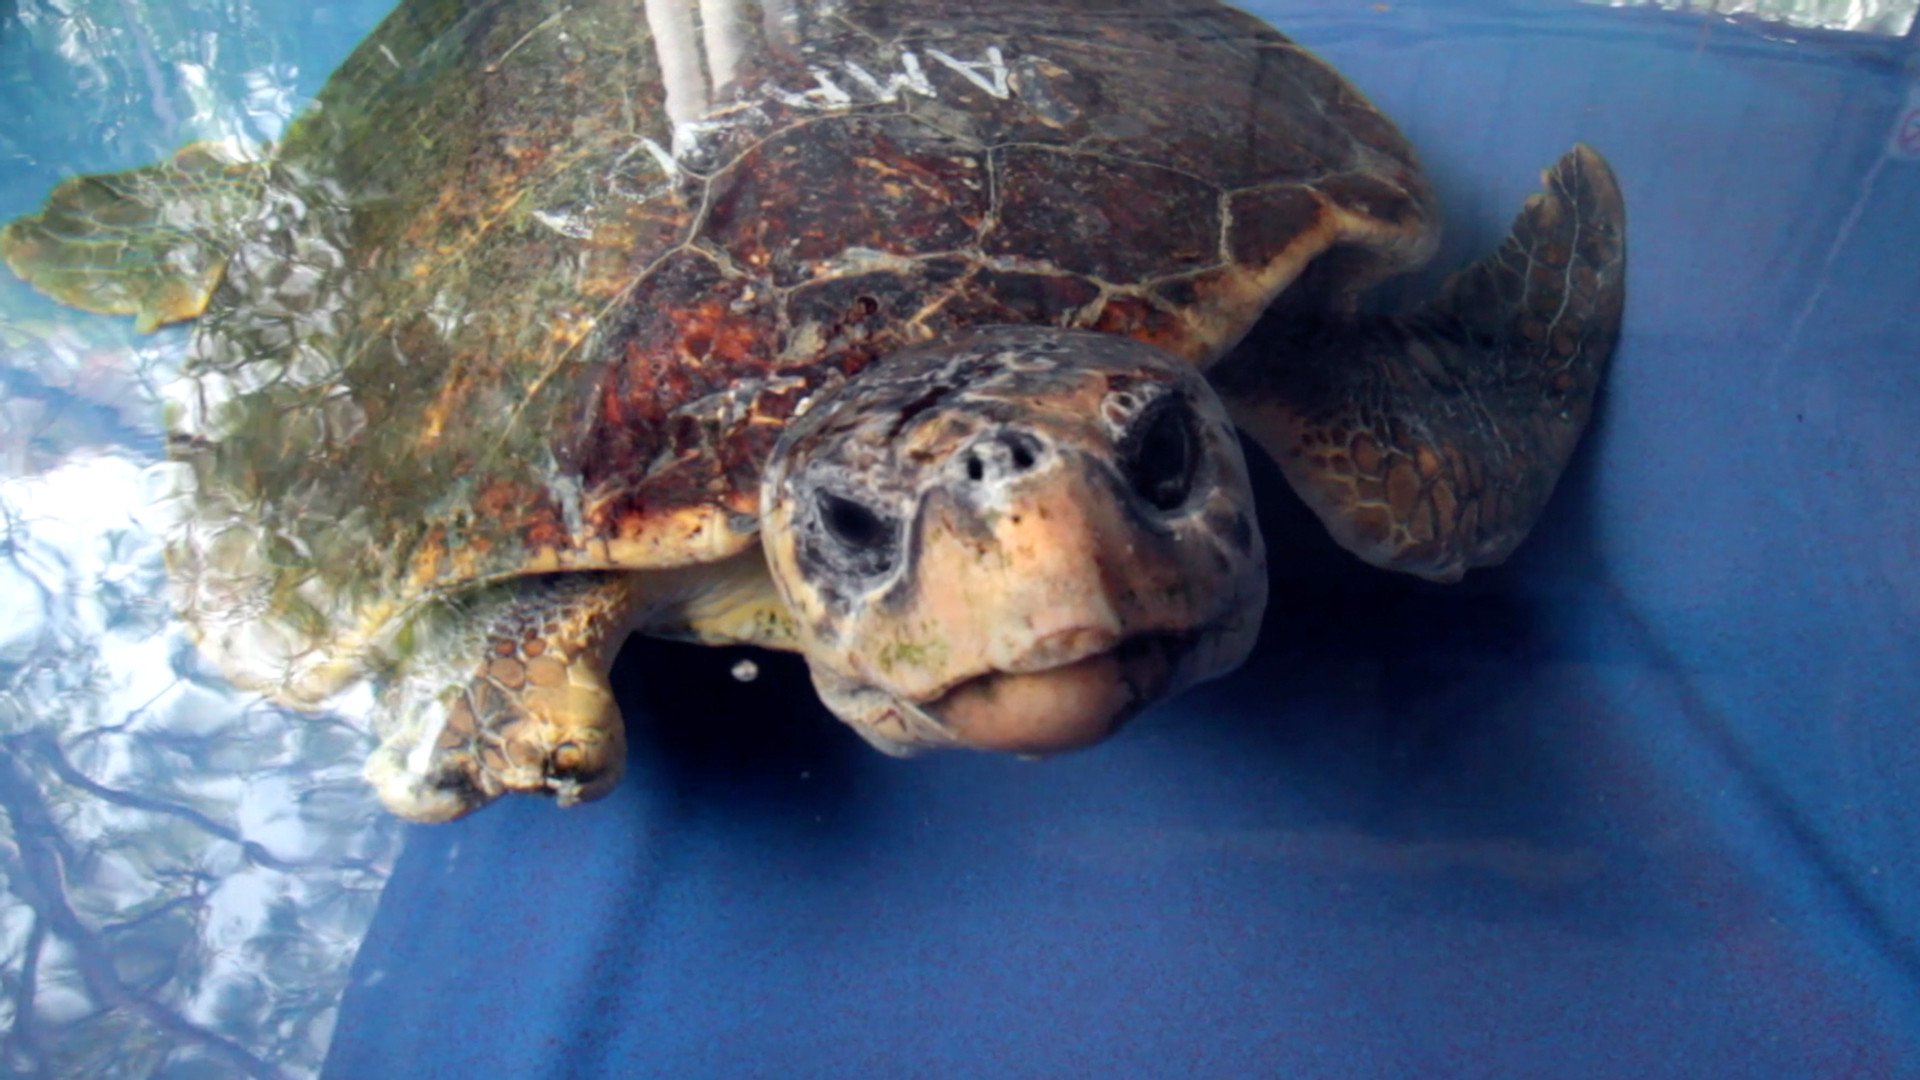 Photo 6 Screen-Shot-Rehabilitated_Turtle_3.jpg